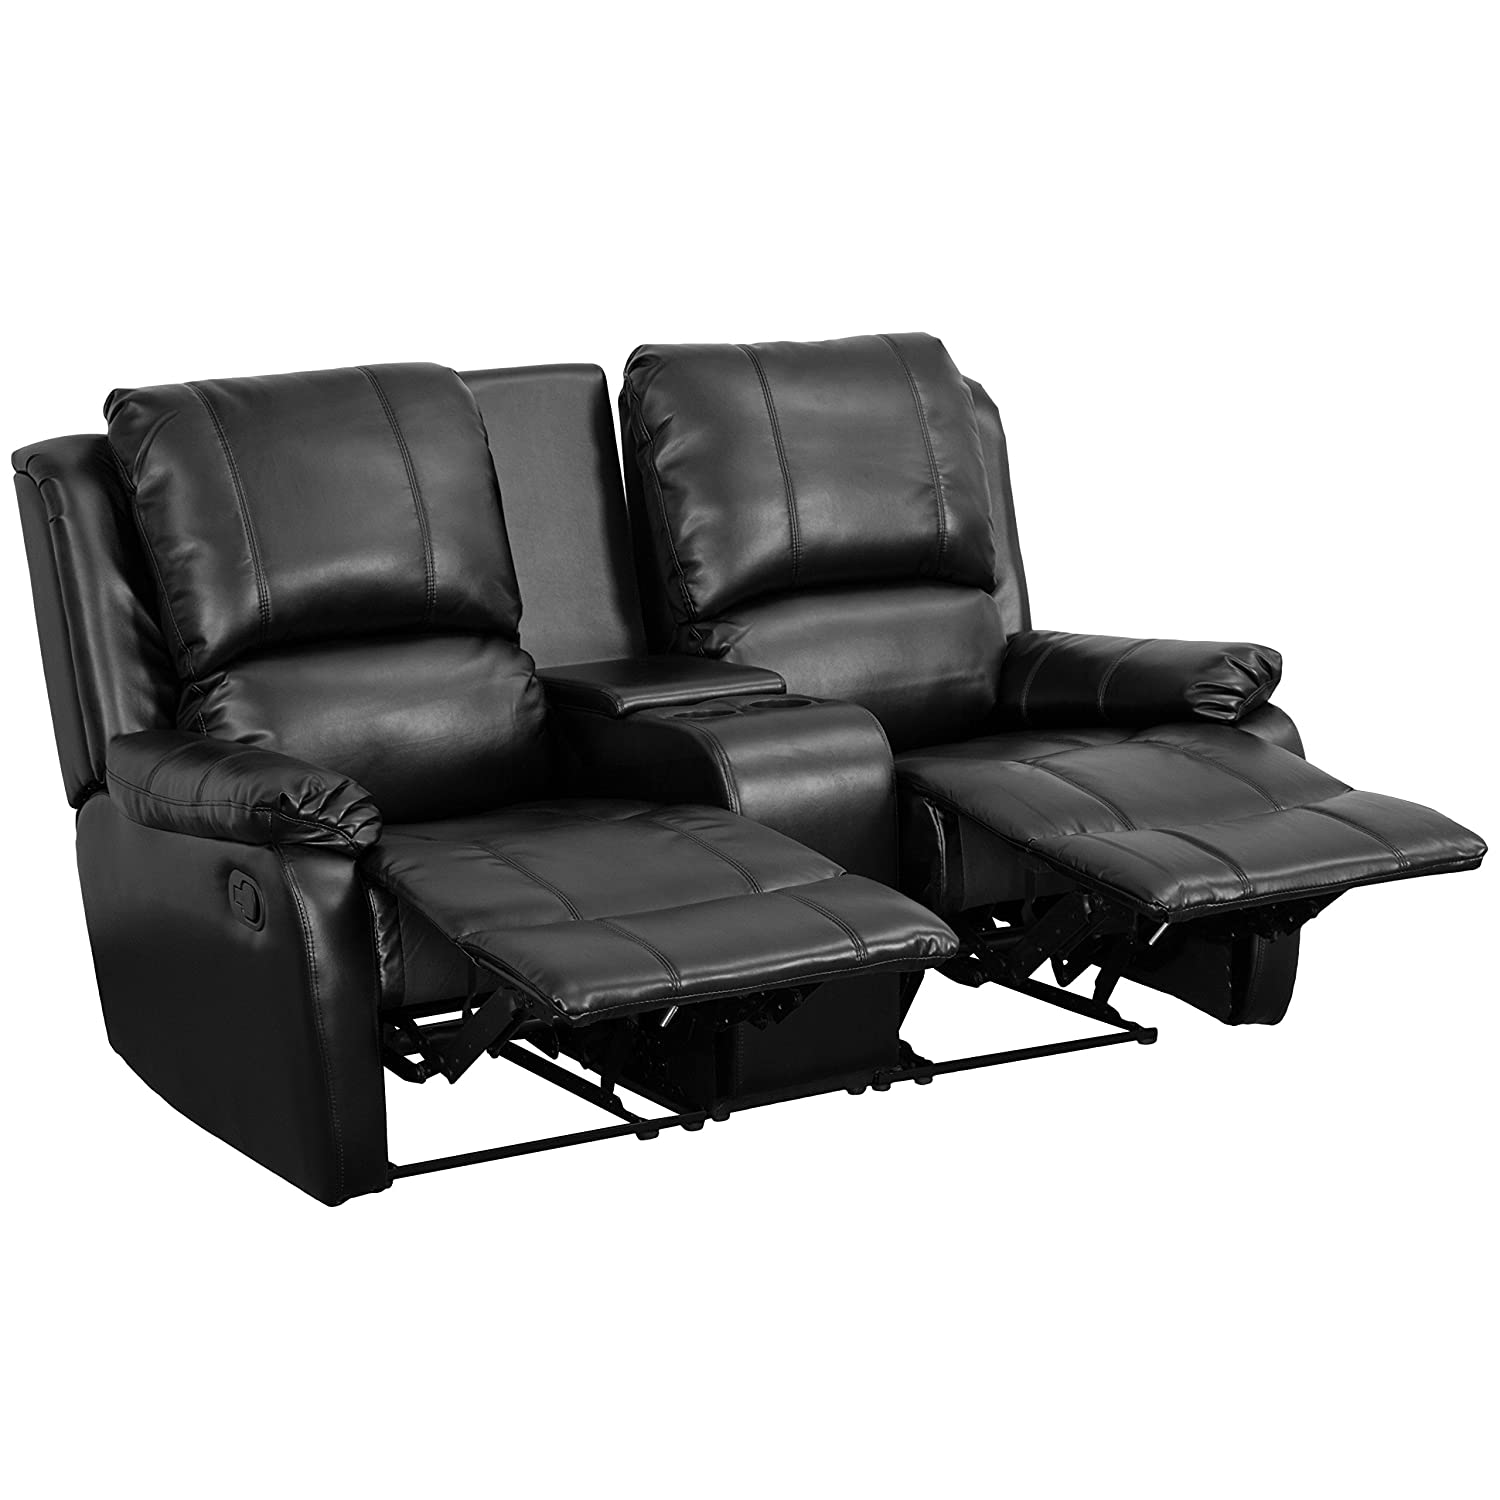 plus furniture theater sports leather home ht image custom recliner recliners product